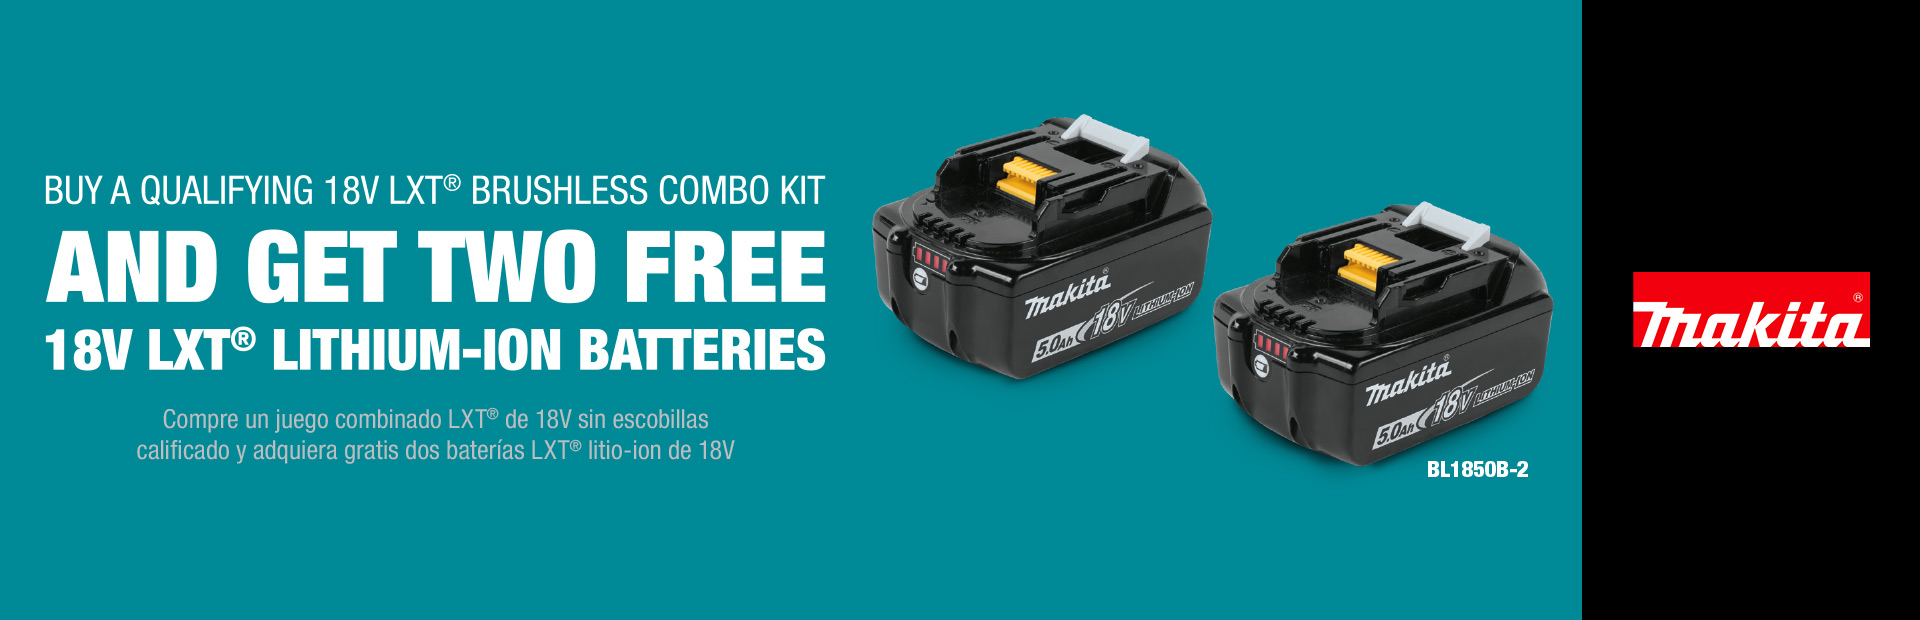 Makita: BUY A QUALIFYING 18V LXT® BRUSHLESS COMBO KIT